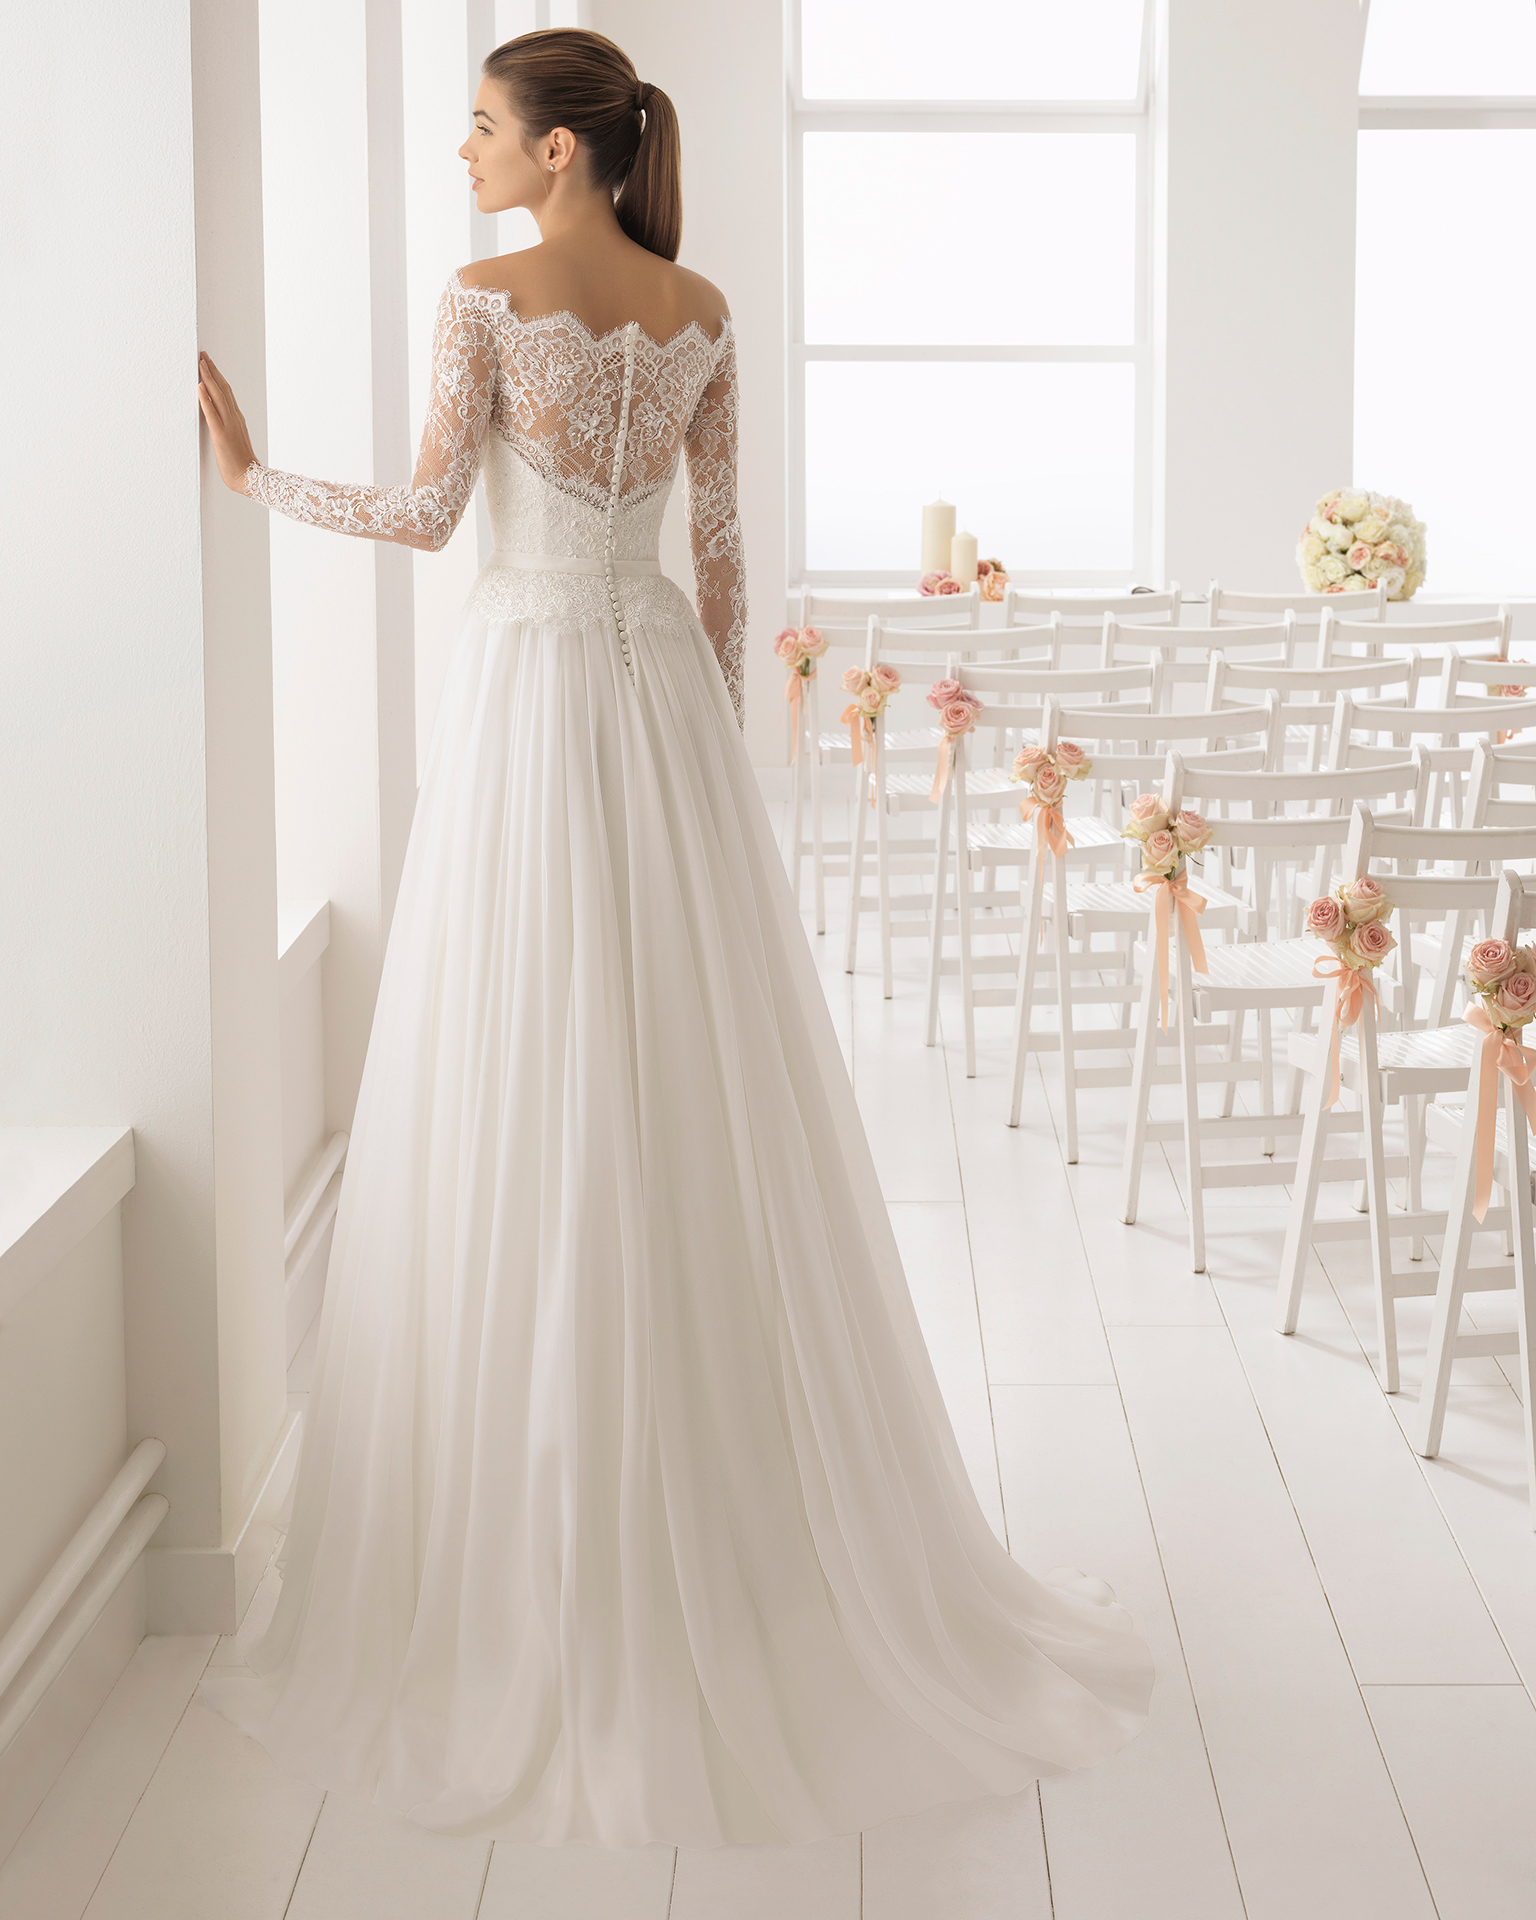 Romantic-style beaded lace and voile wedding dress with long sleeves and off-the-shoulder neckline.